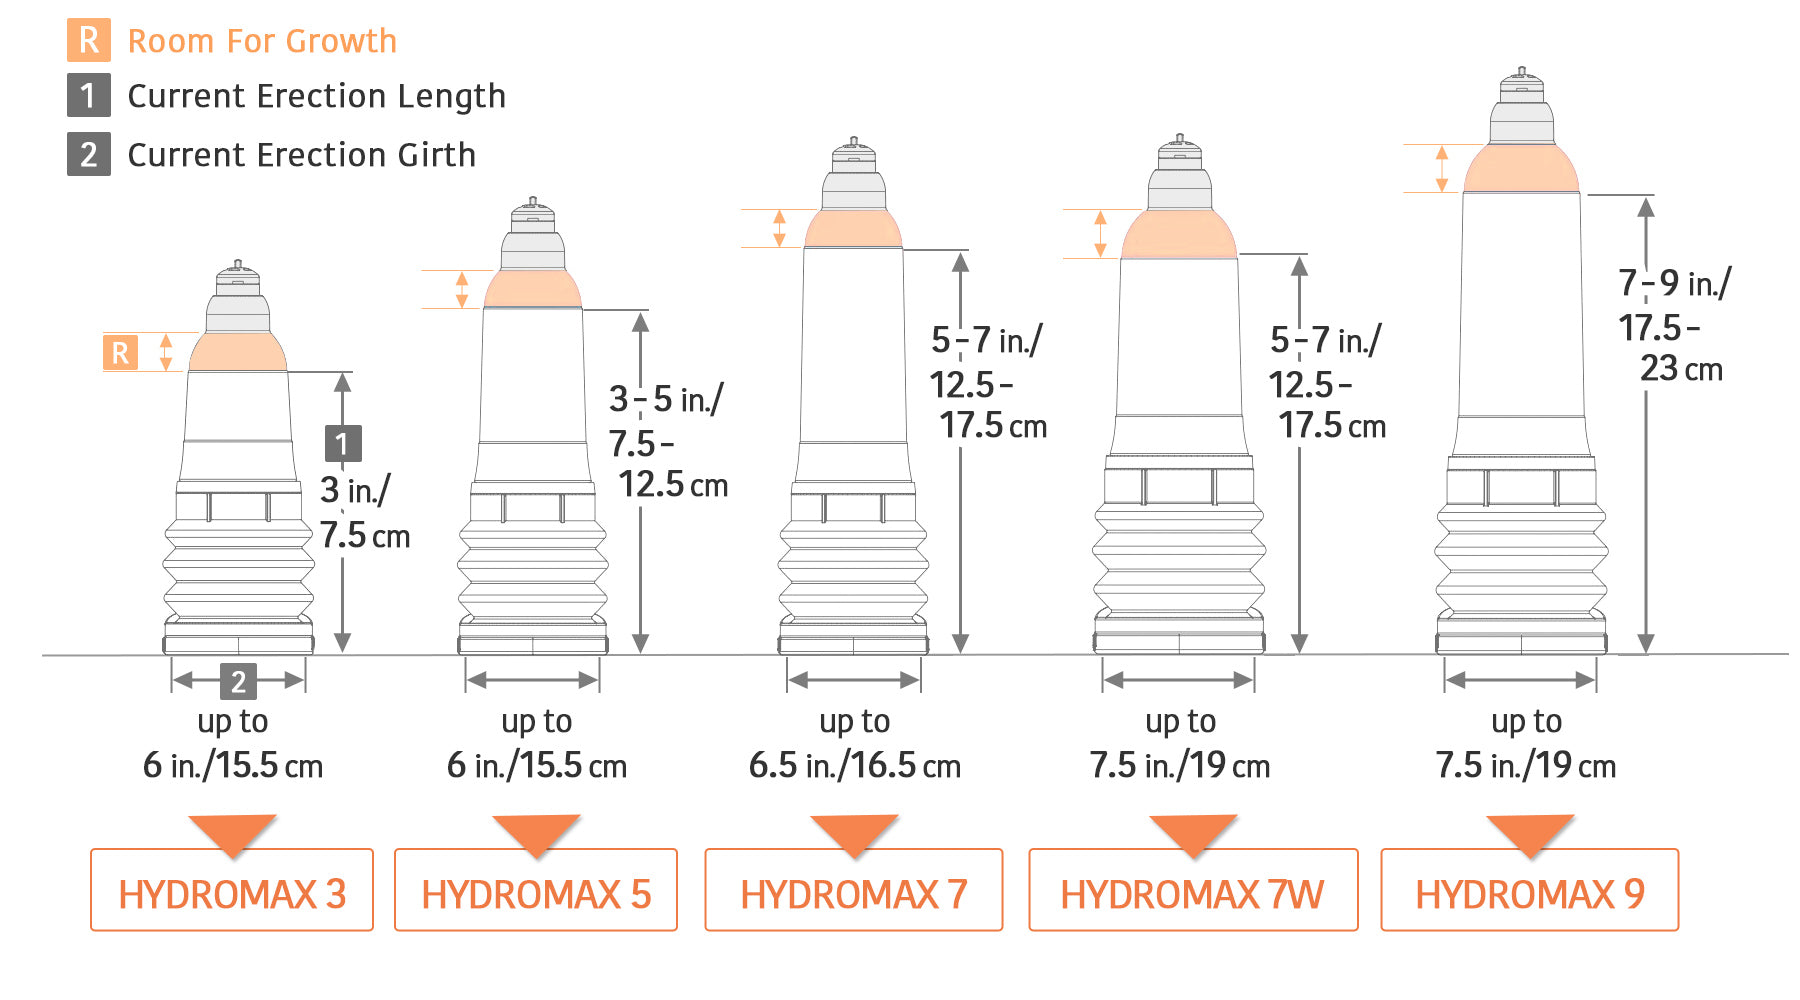 hydromax size guide for sizes 3, 5, 7, 7W, 9 with size capacity for girth and length